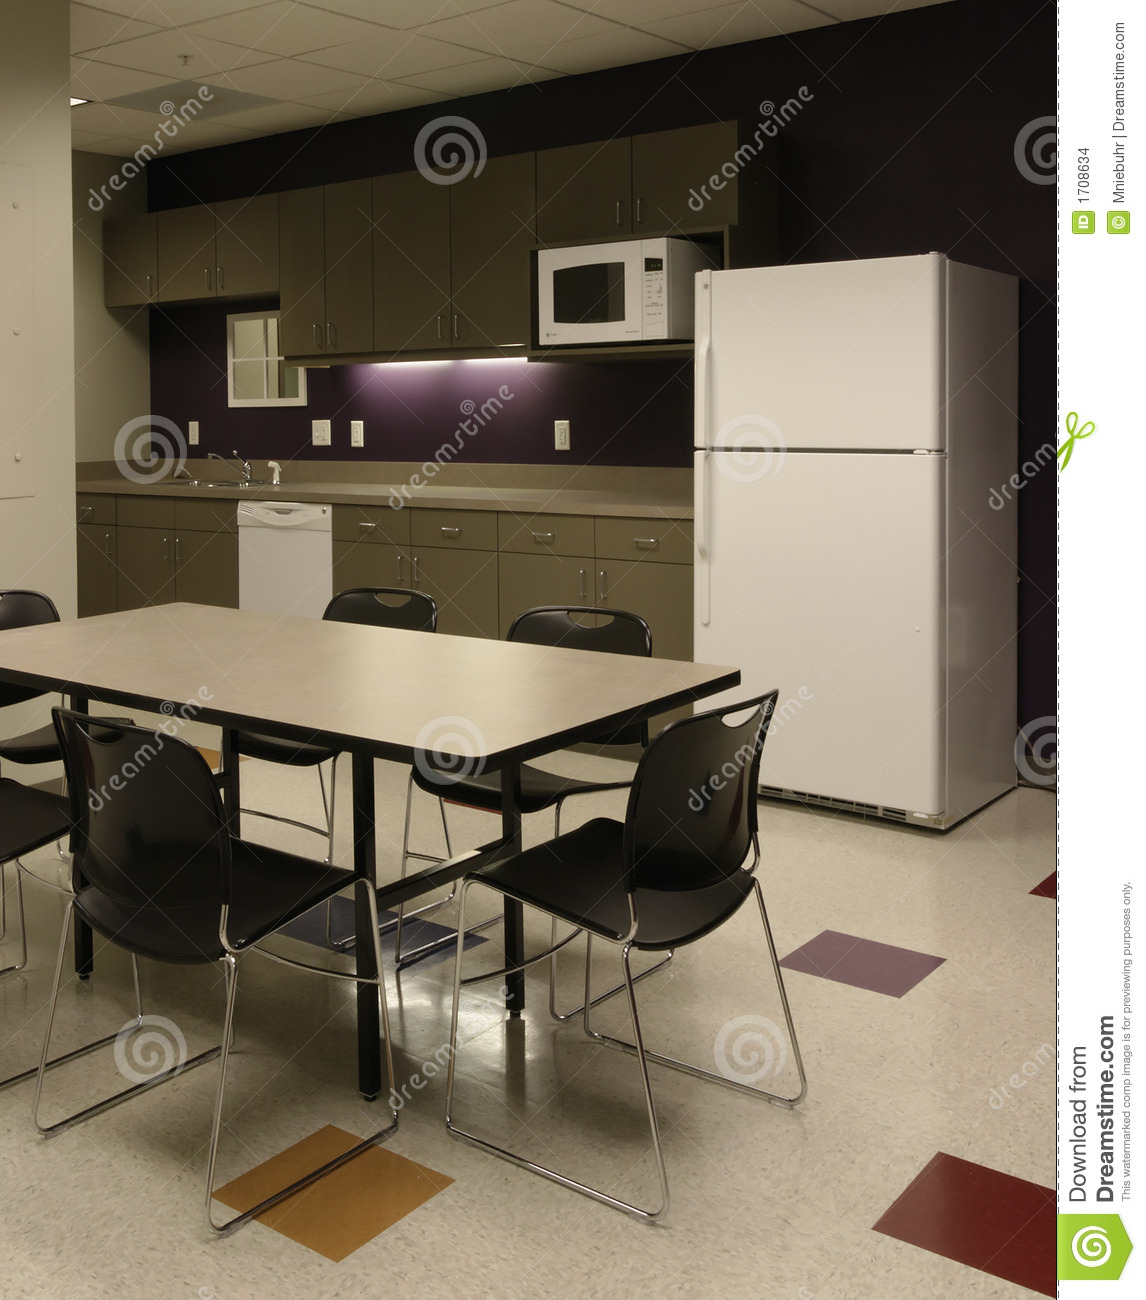 office break room cafe employee kitchen space stock